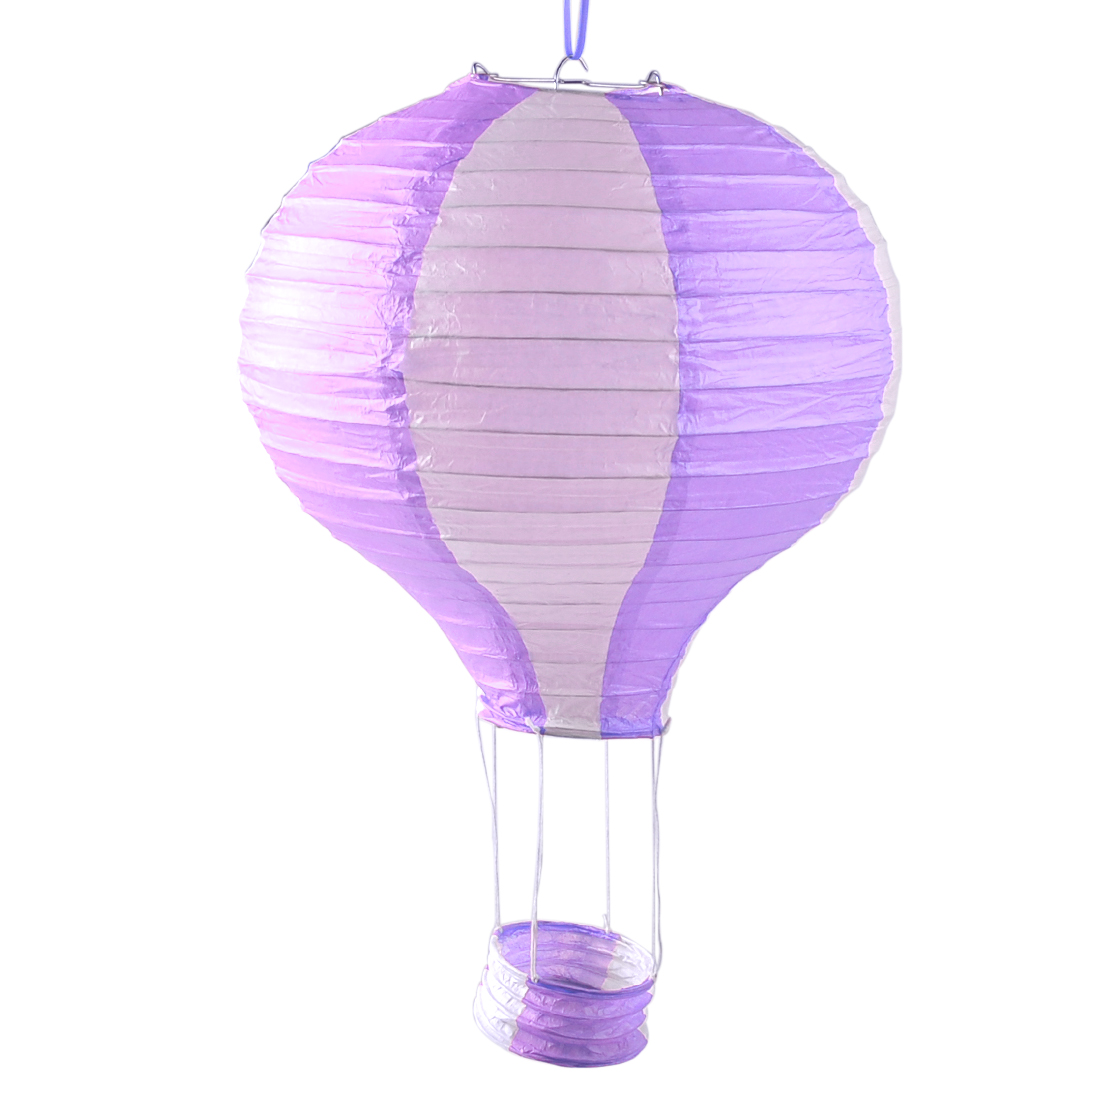 ballon papier hei luftballon lampenschirm papierlaterne lampion party h nge deko ebay. Black Bedroom Furniture Sets. Home Design Ideas